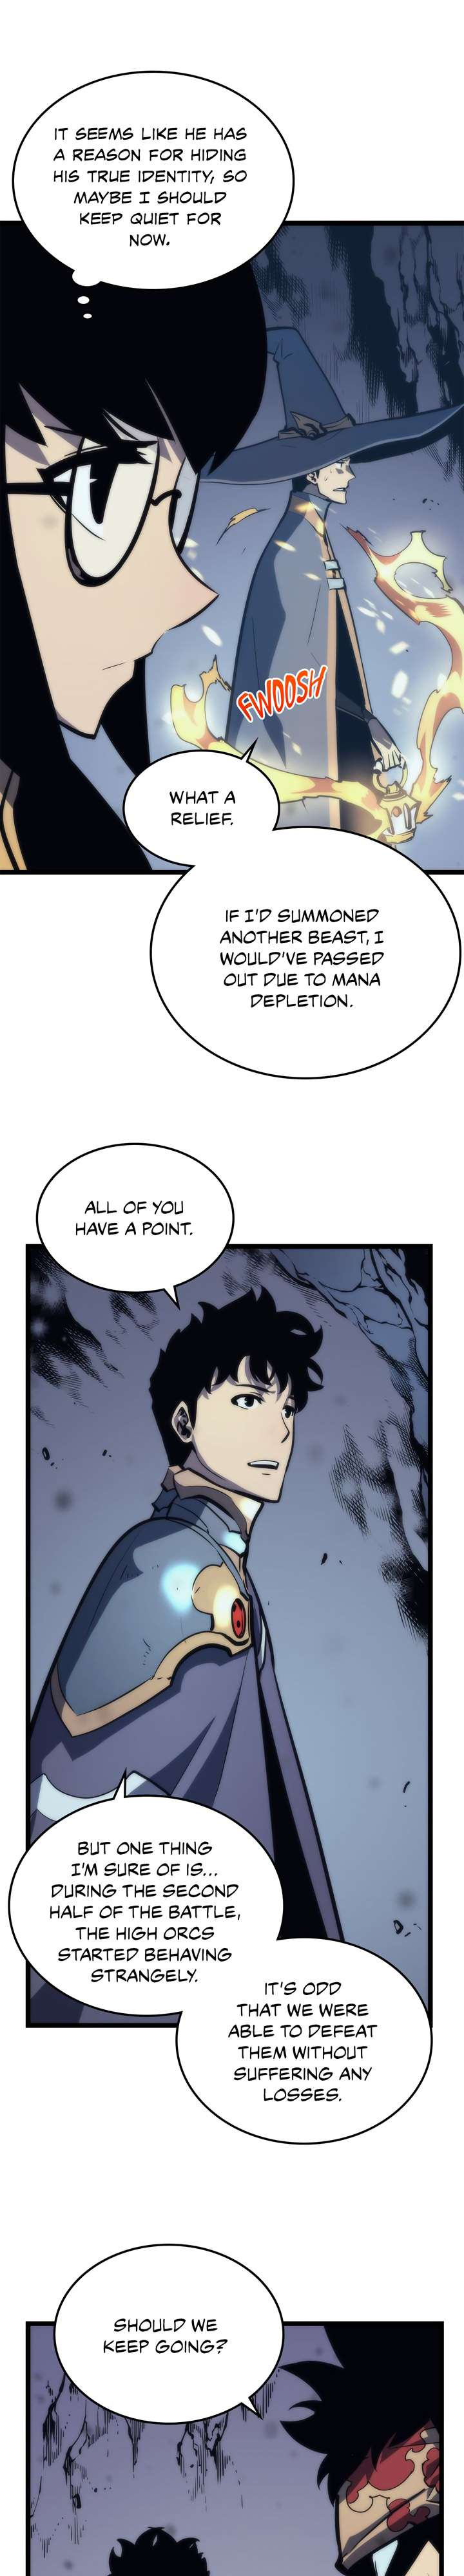 Solo Leveling Chapter 70 Page 18